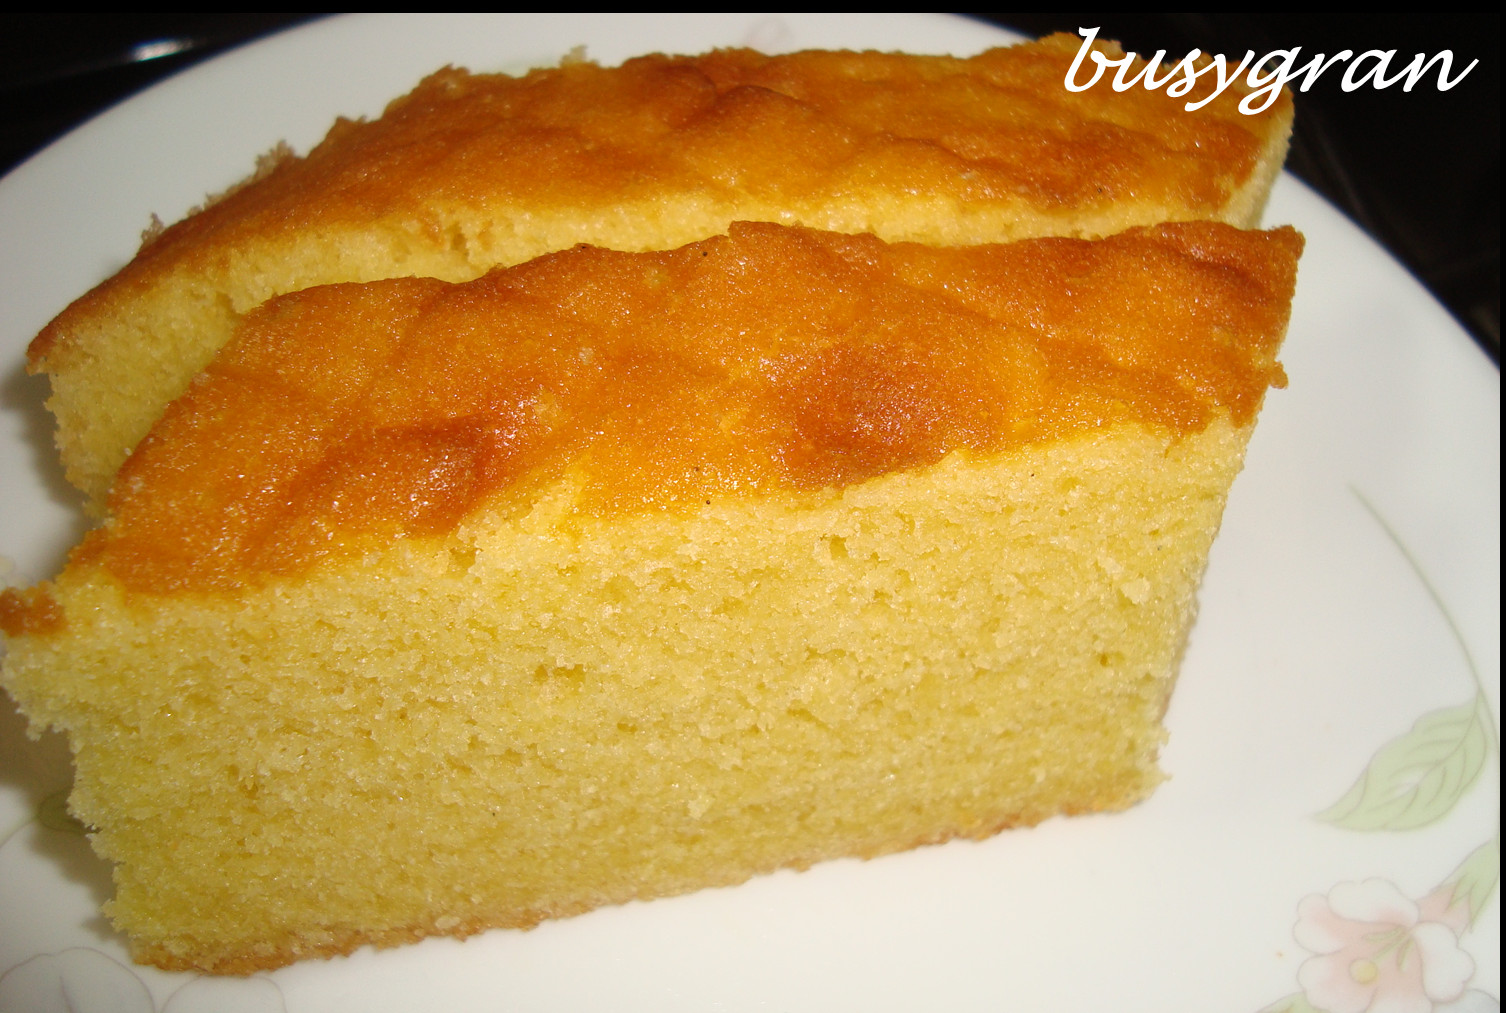 Butter Cake Recipes  A Busy Gran s Kitchen Another Butter Cake